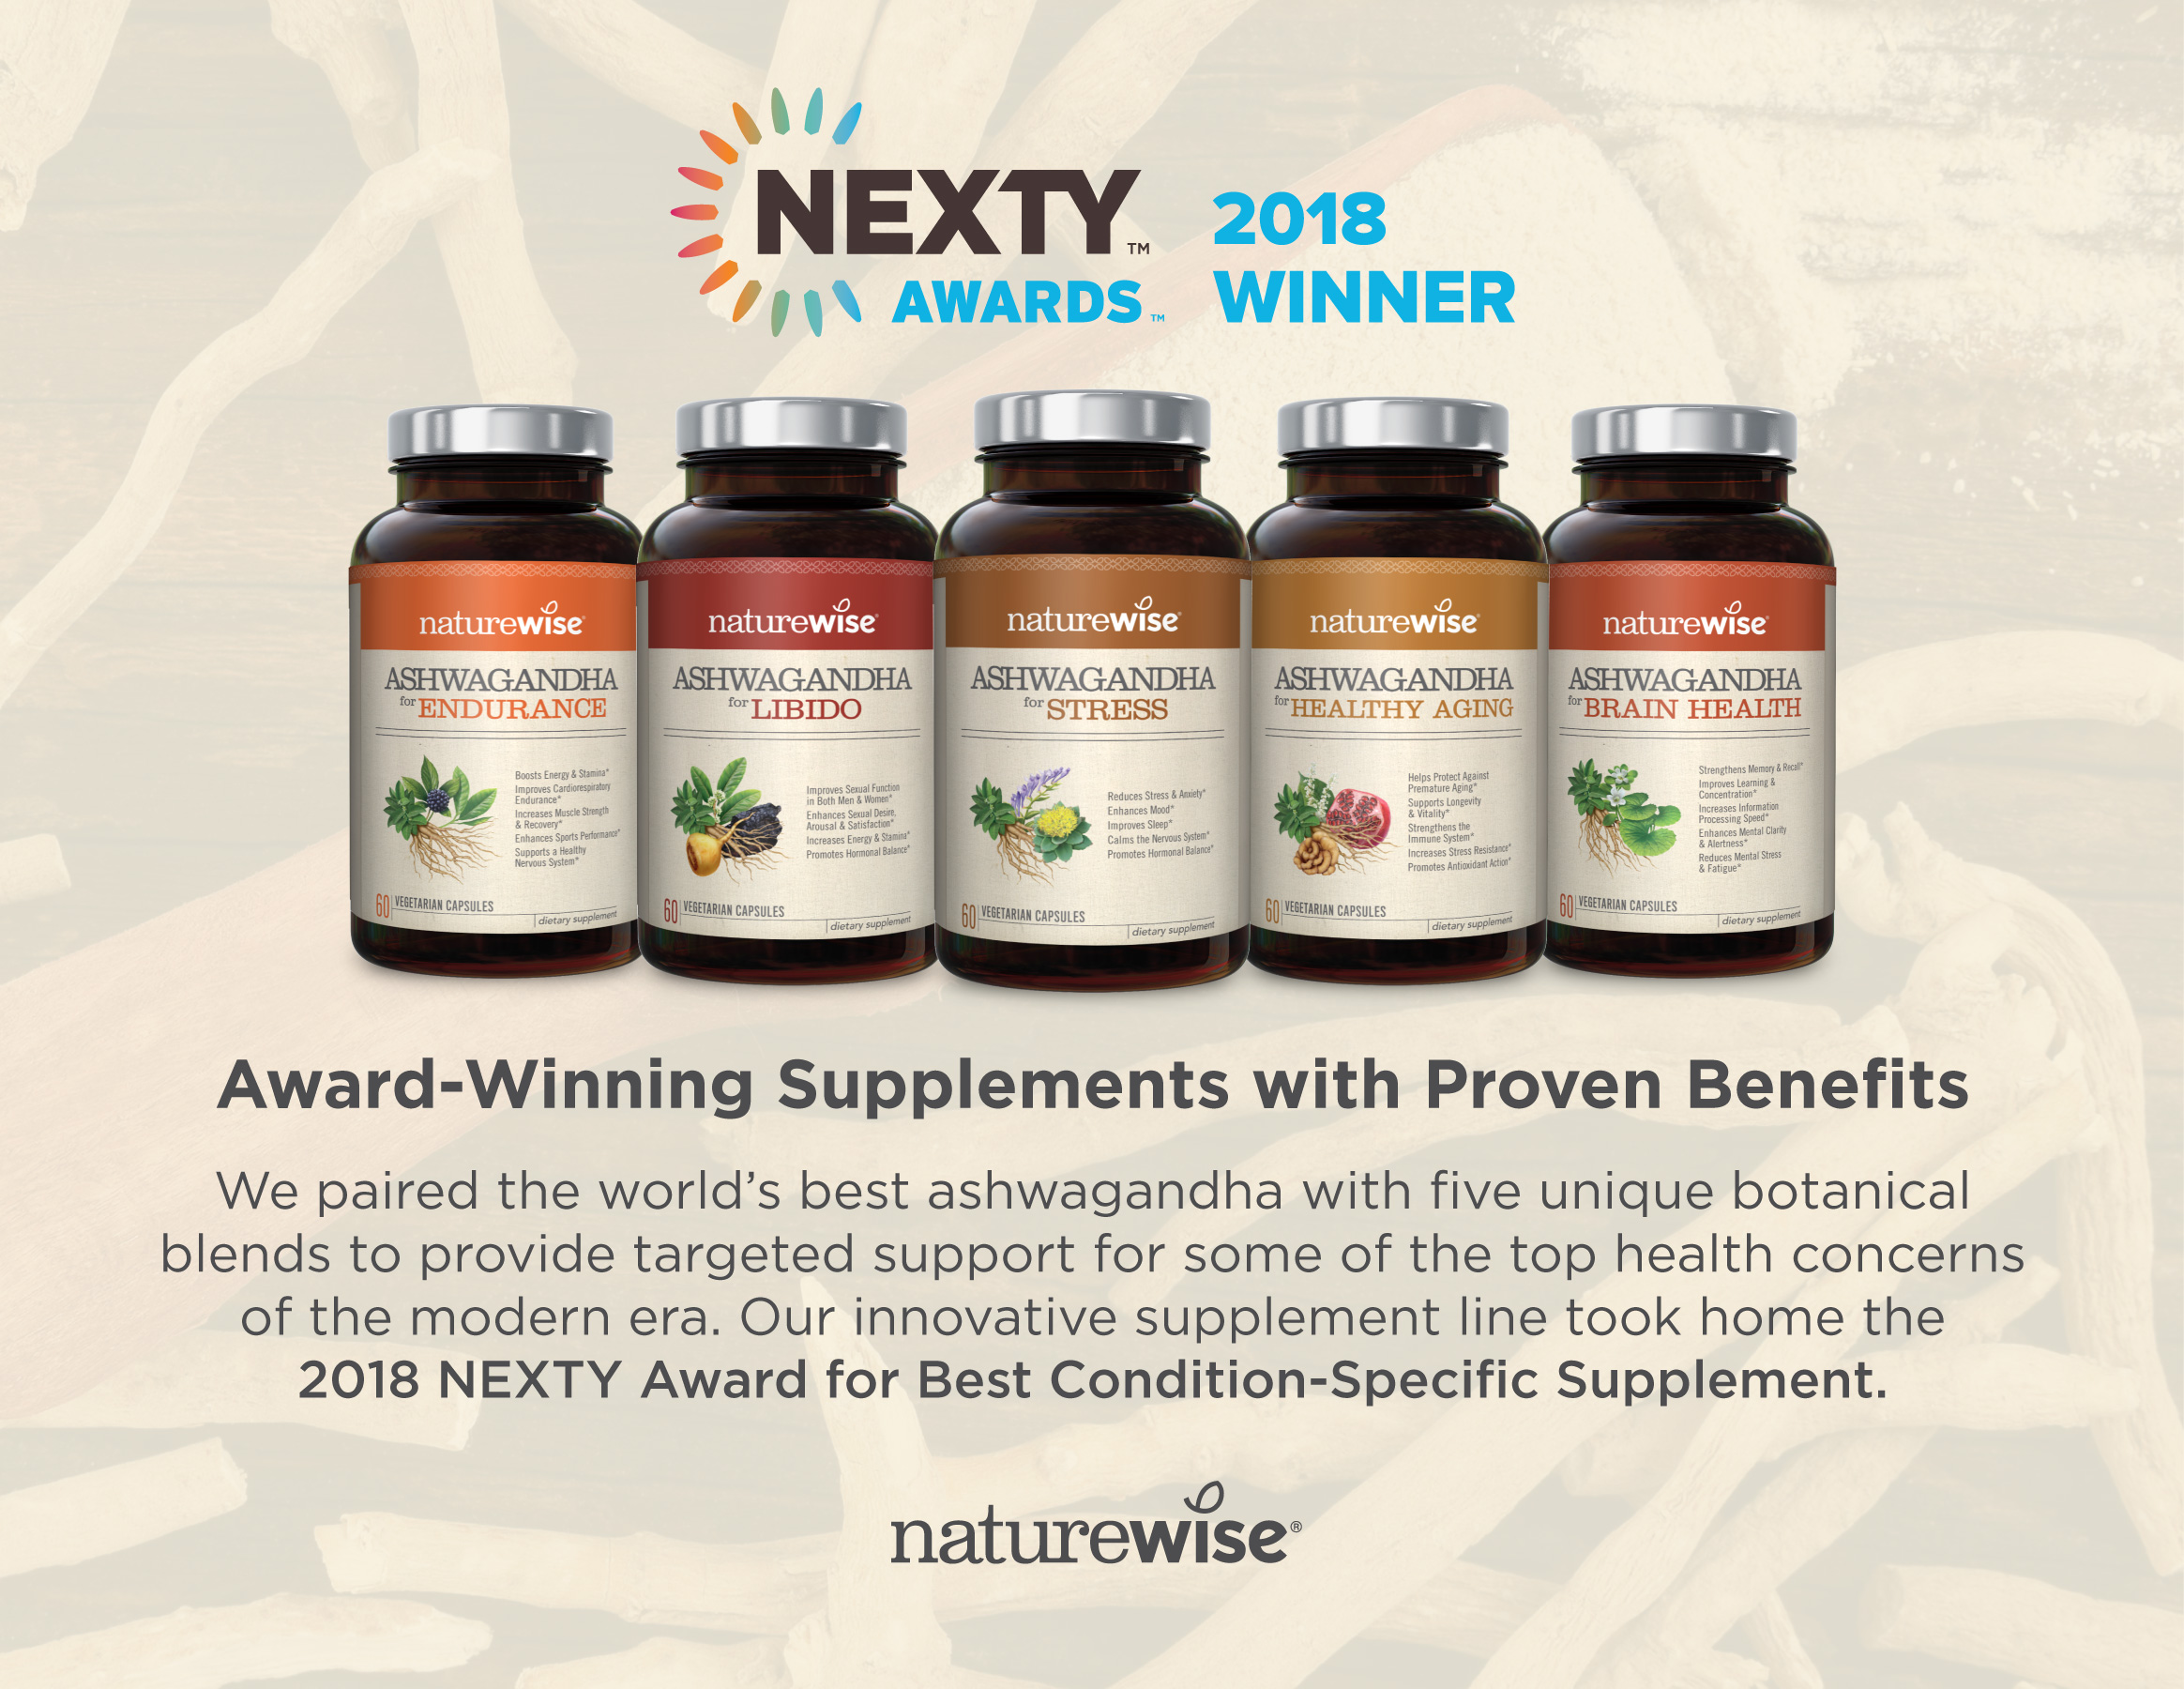 Award-Winning Supplements with Proven Benefits